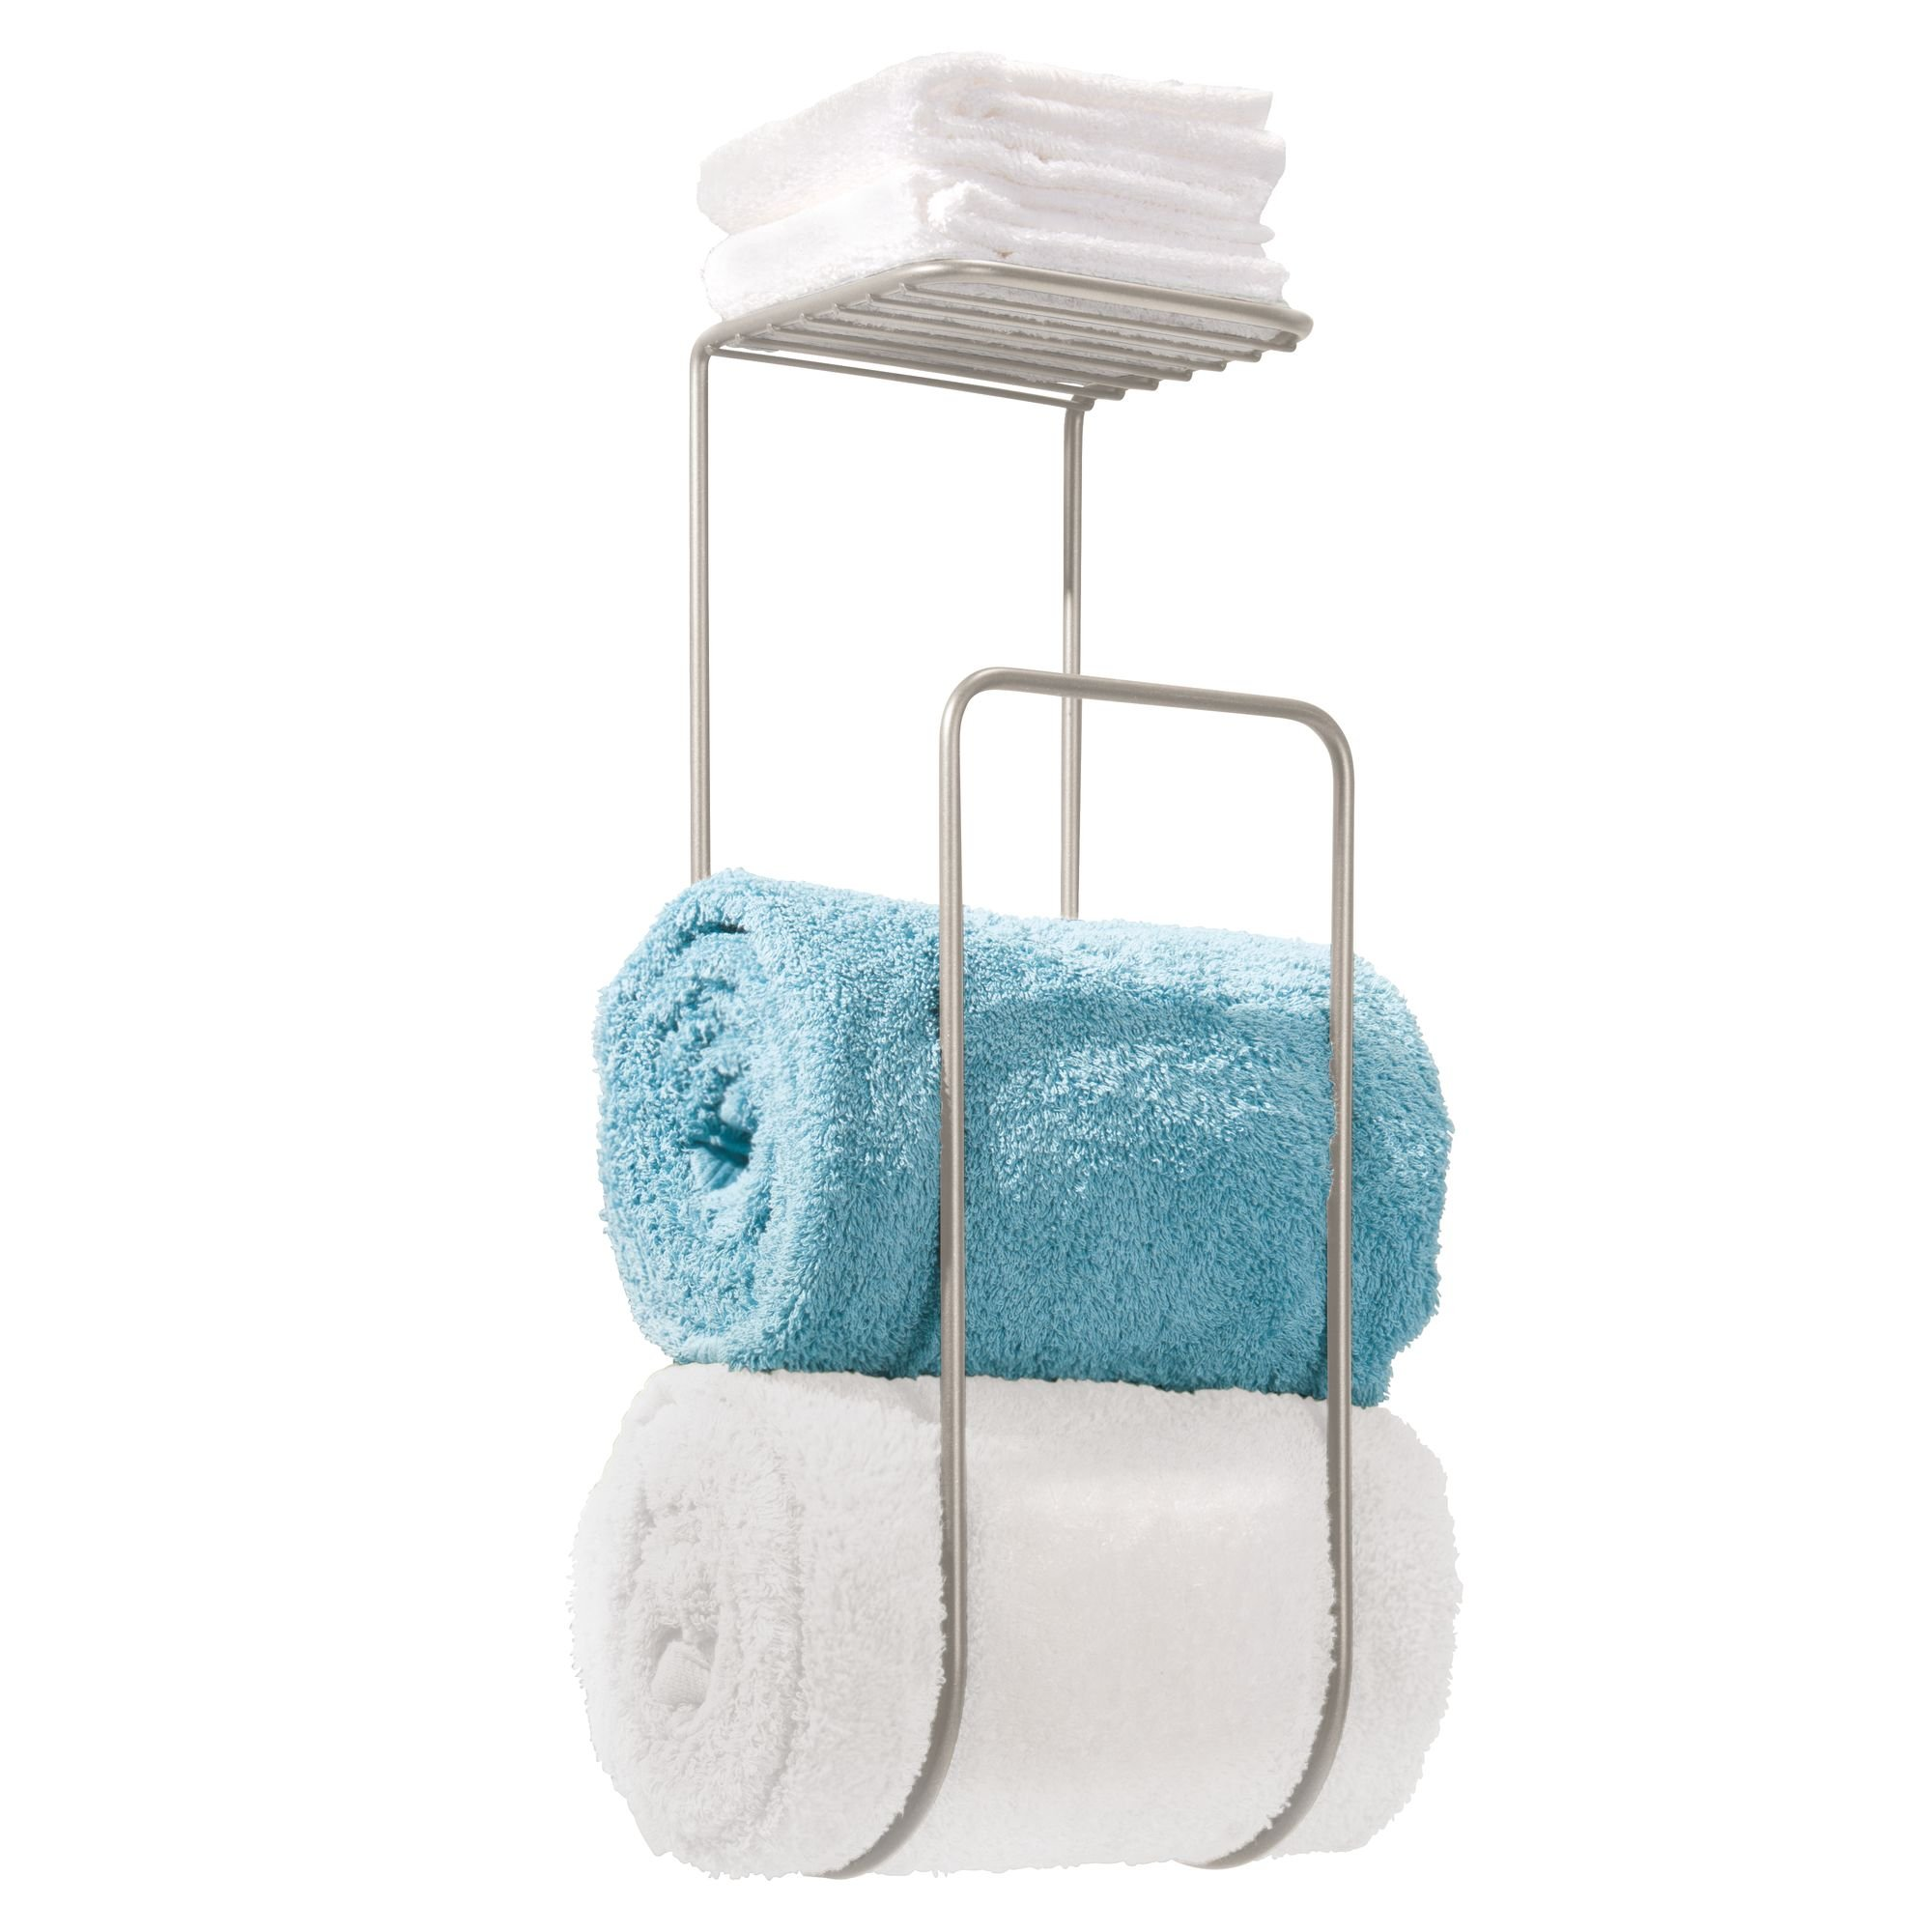 New Towel Holder Wall Mount Storage Washcloths Rolled With